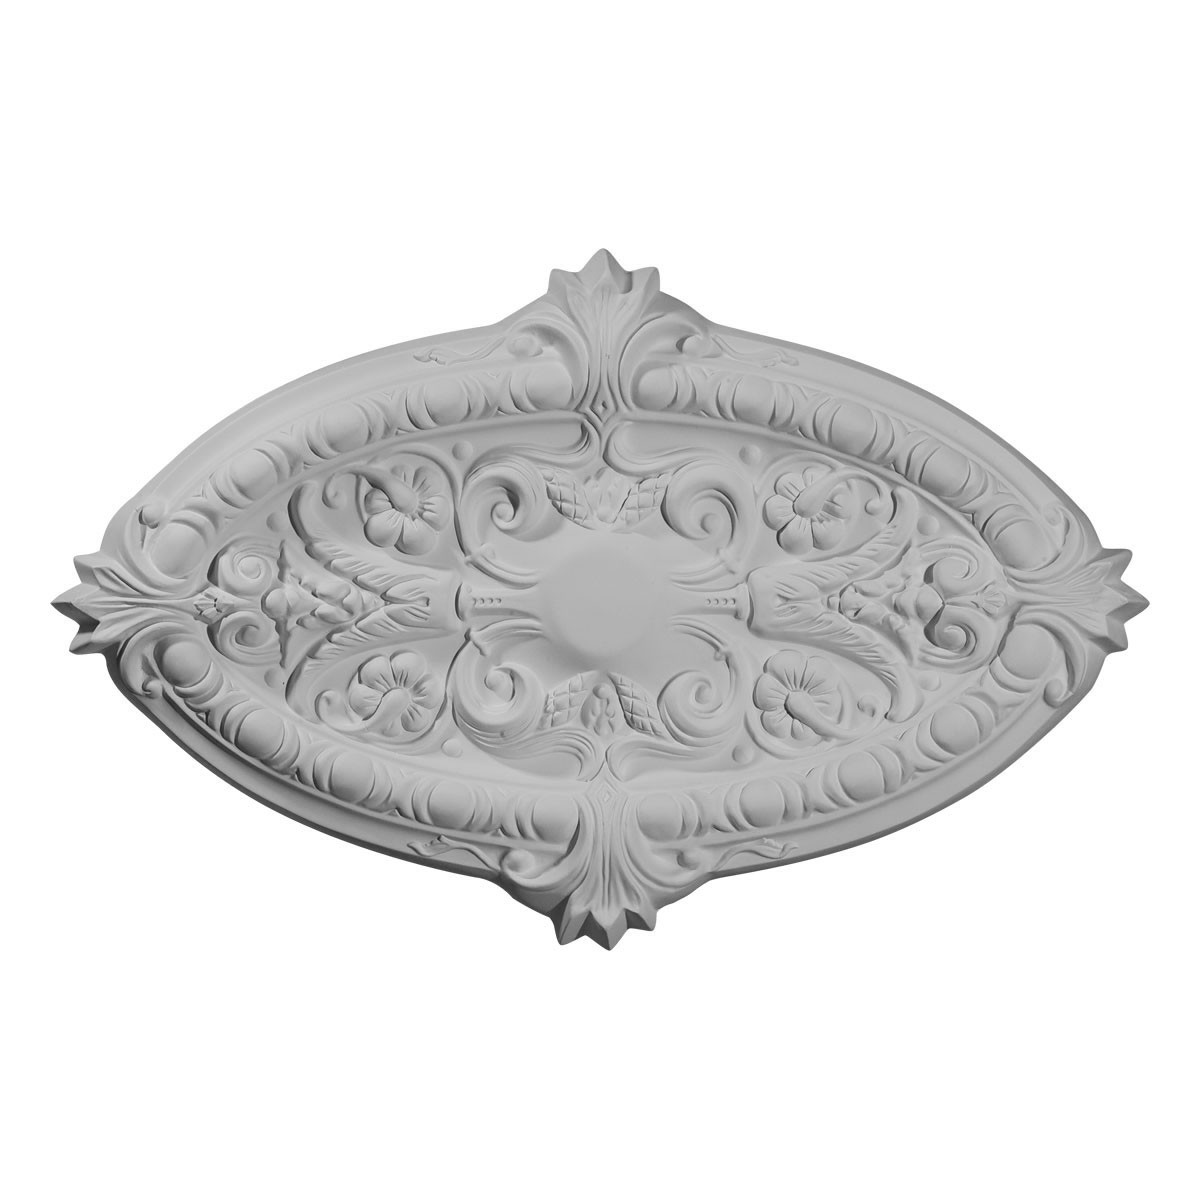 """EM-CM26MR - 26 3/8""""W x 17 1/4""""H x 1 3/4""""P Marcella Ceiling Medallion (Fits Canopies up to 3"""")"""